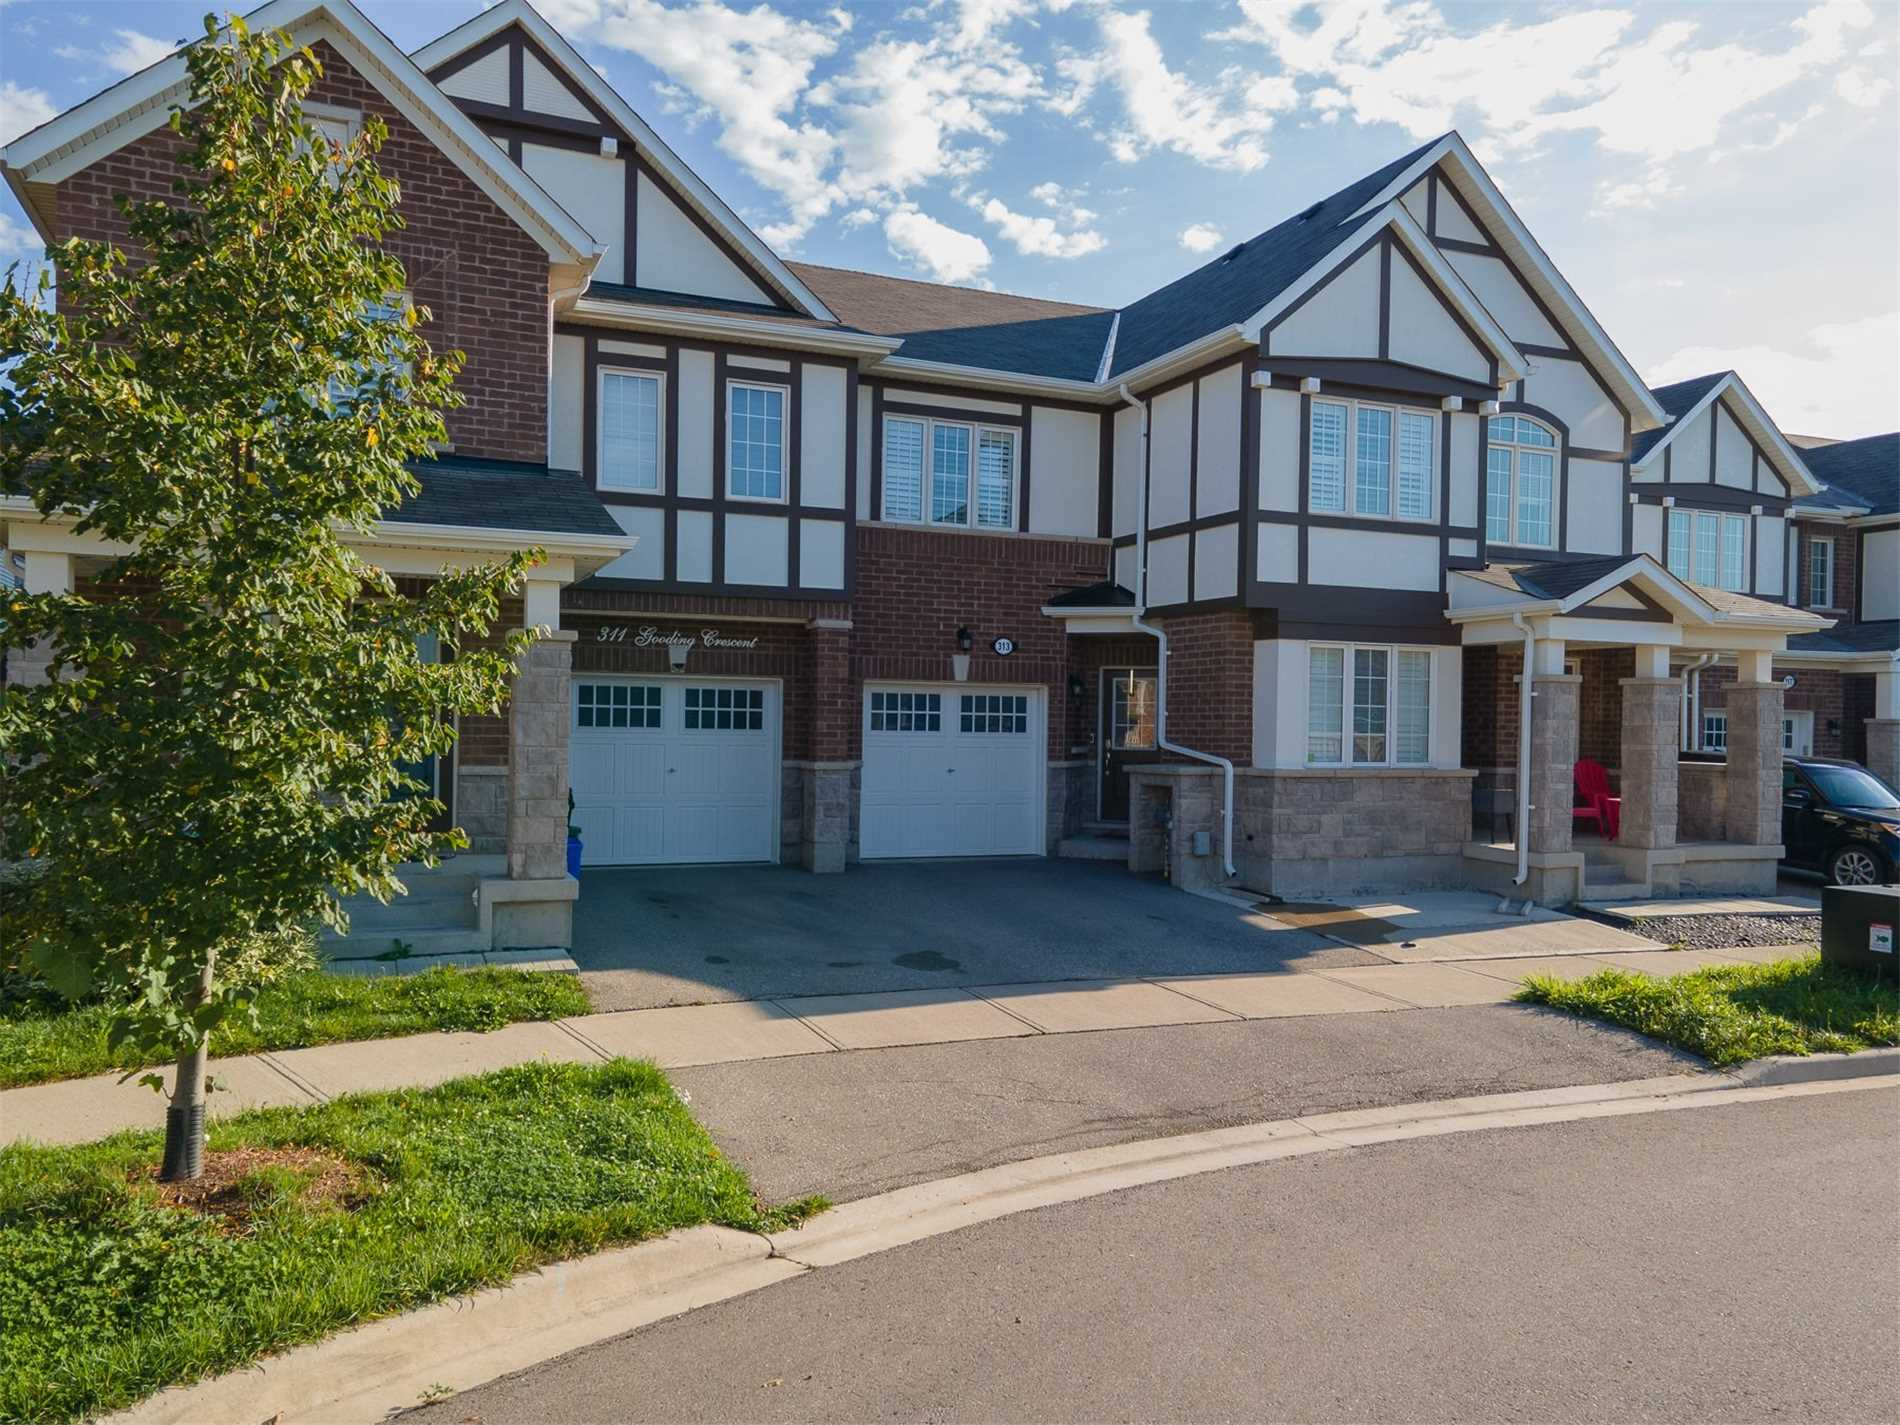 313 Gooding Cres - Ford Att/Row/Twnhouse for sale, 4 Bedrooms (W5401006) - #2